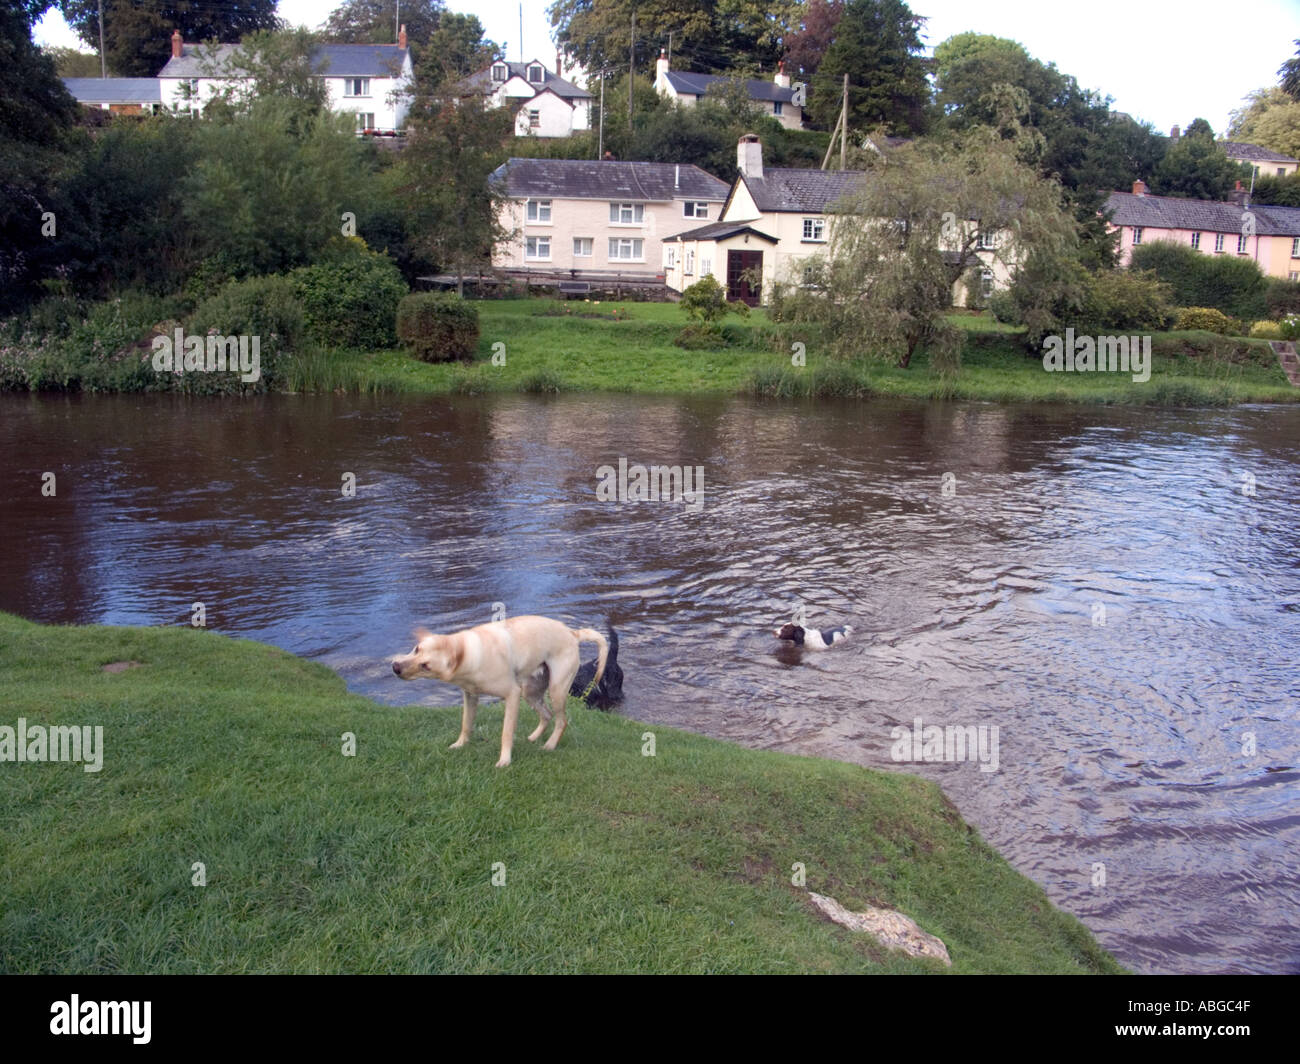 Dogs play in the River Barle at Withypool, Exmoor National Park, Devon, England, Great Britain, UK, - Stock Image